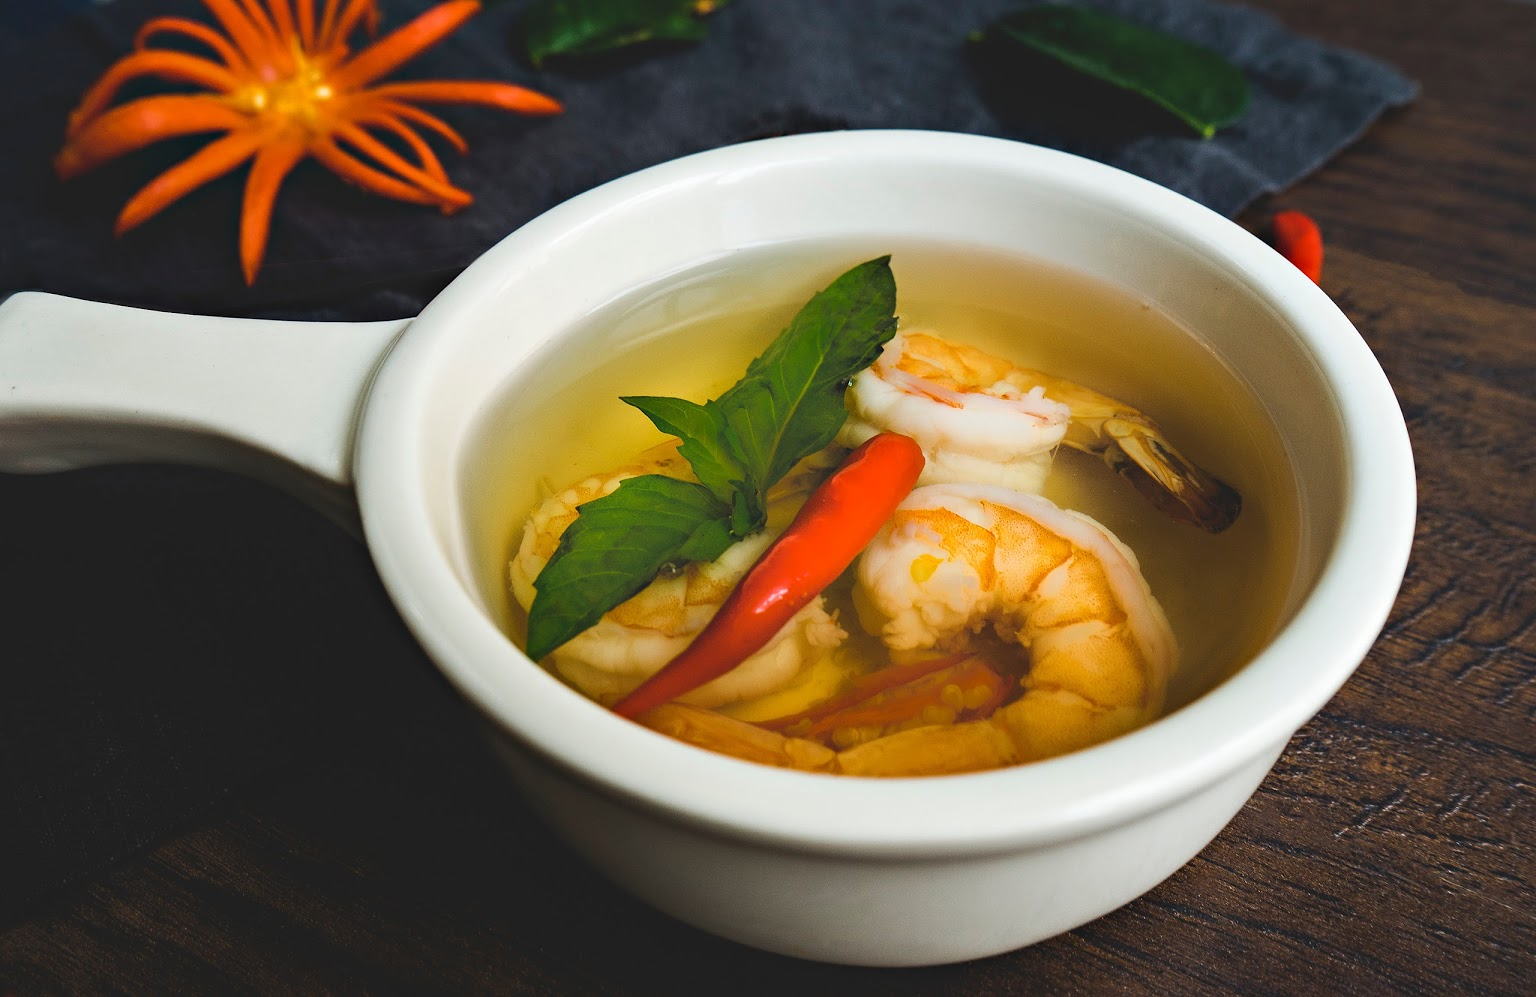 Lemongrass Soup served with the aroma of basil leaves and mixed herbs